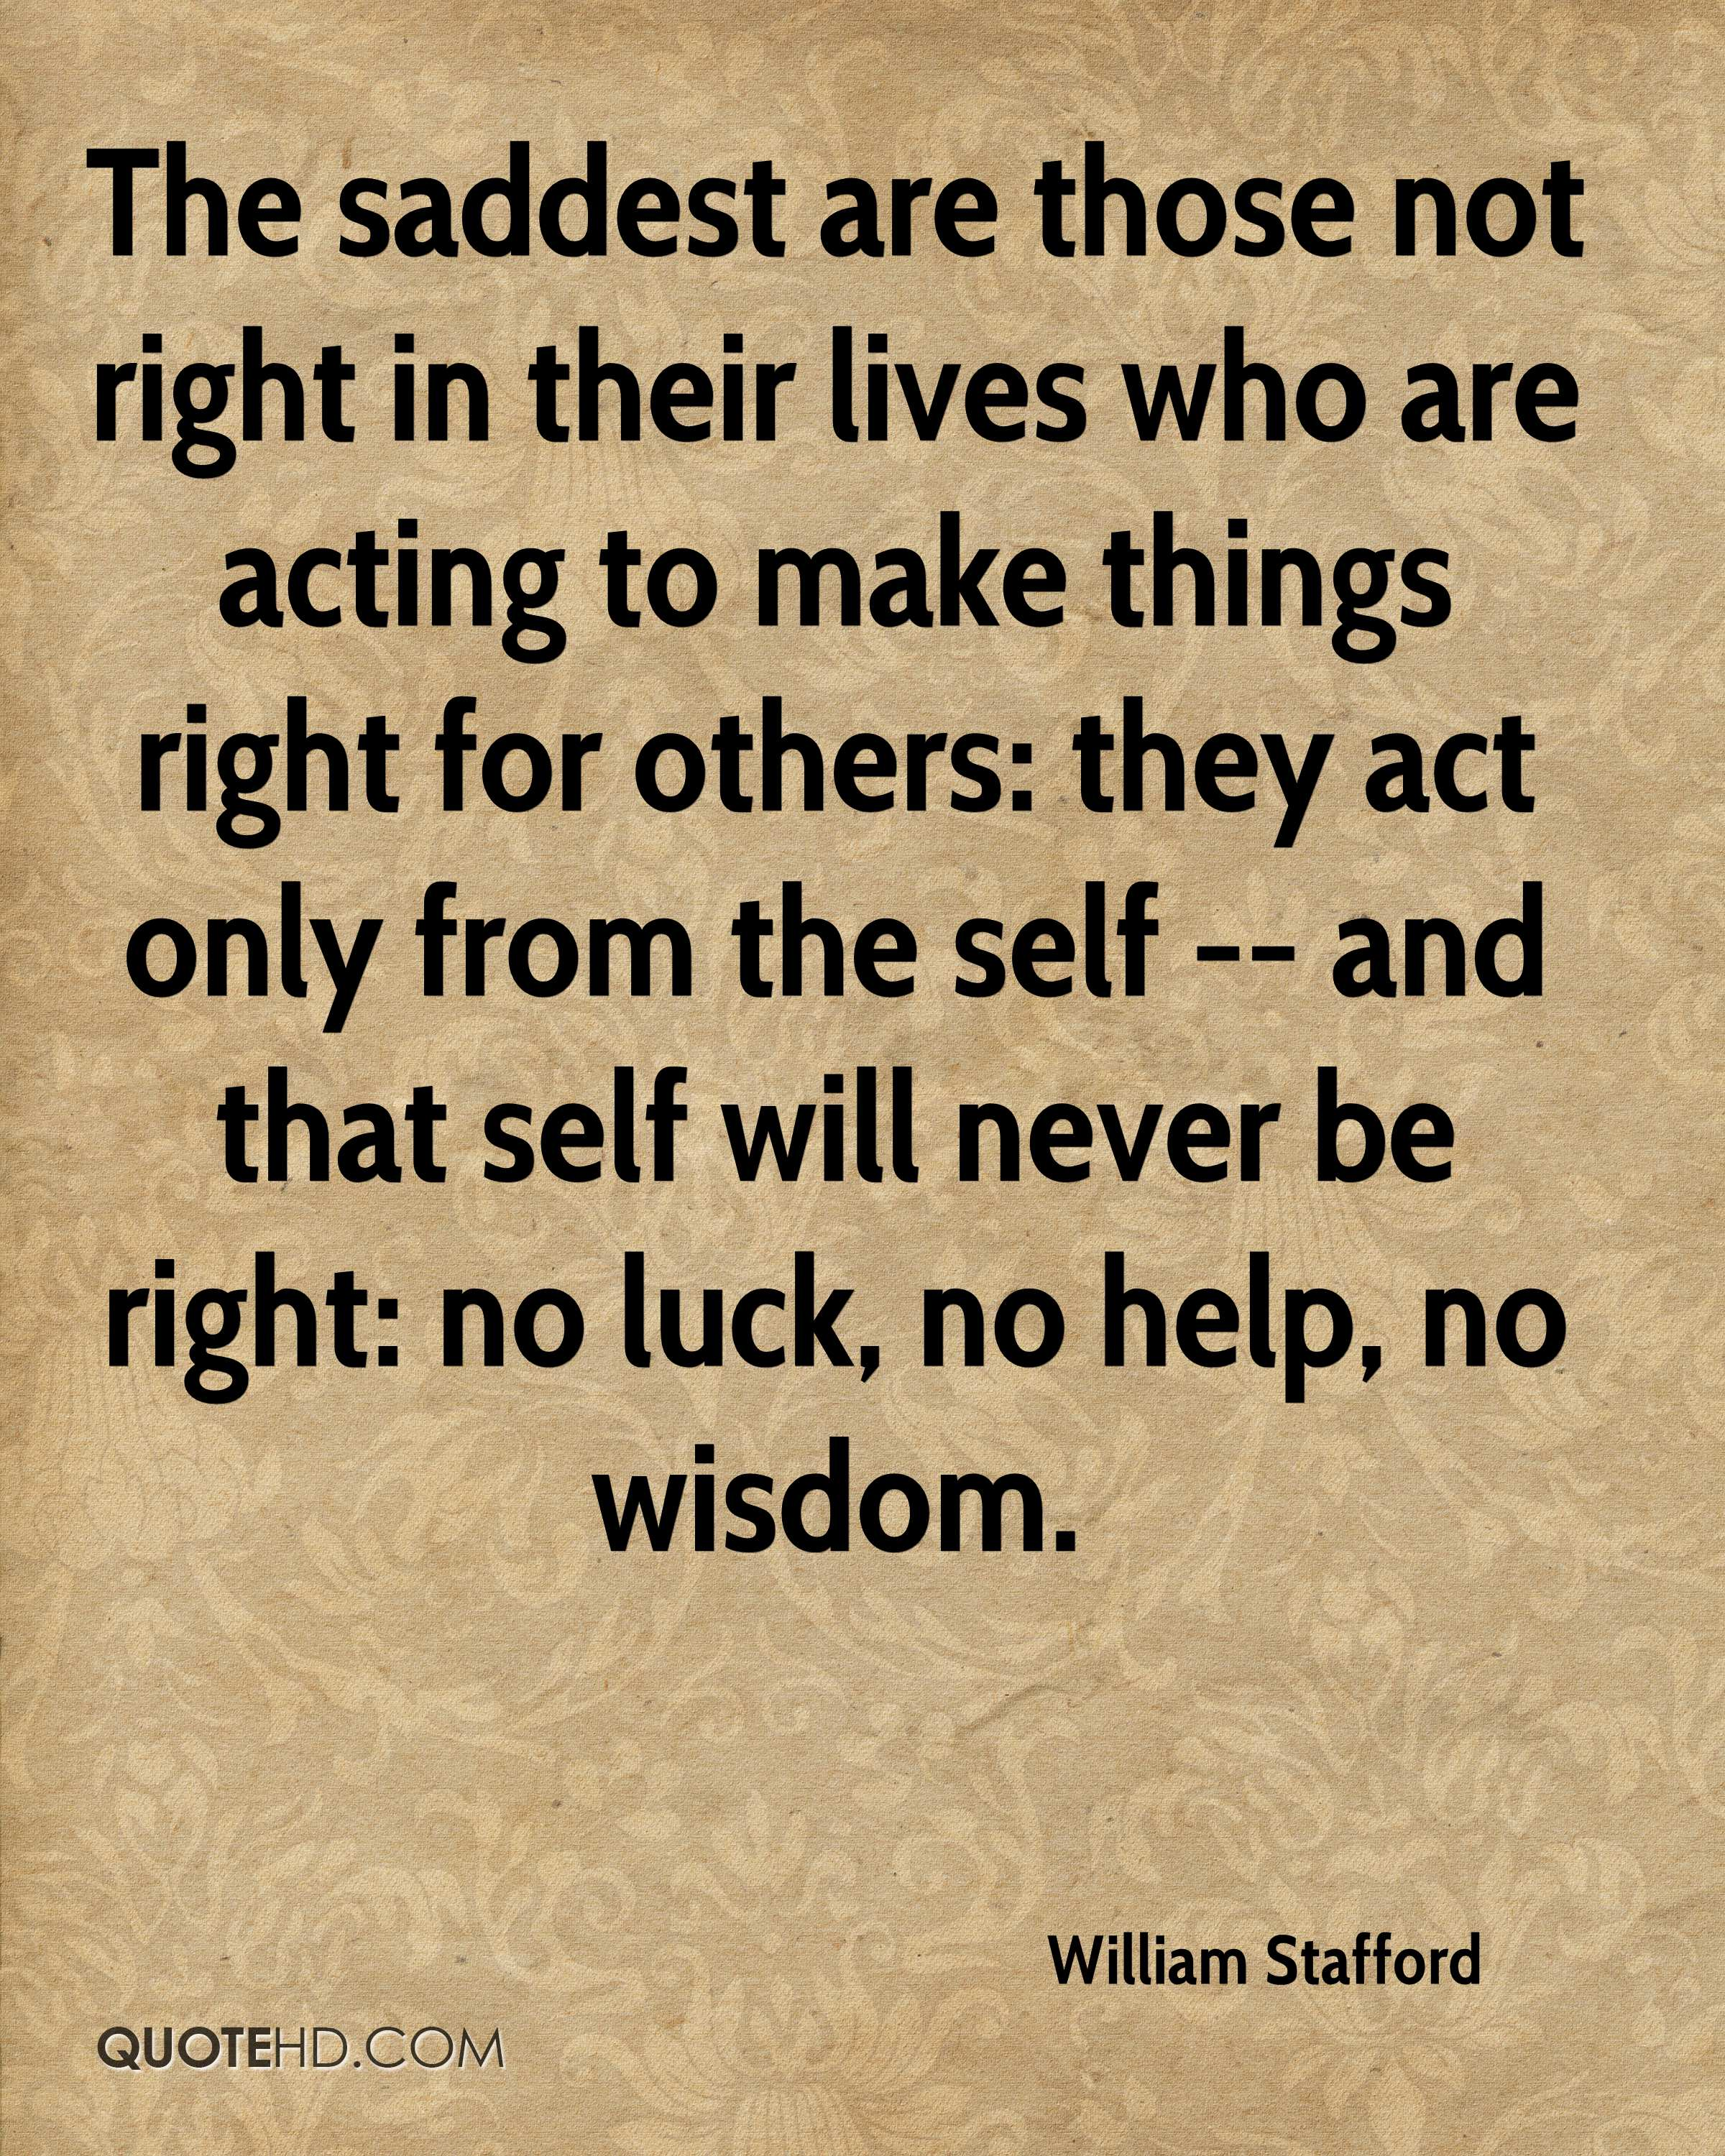 The saddest are those not right in their lives who are acting to make things right for others: they act only from the self -- and that self will never be right: no luck, no help, no wisdom.